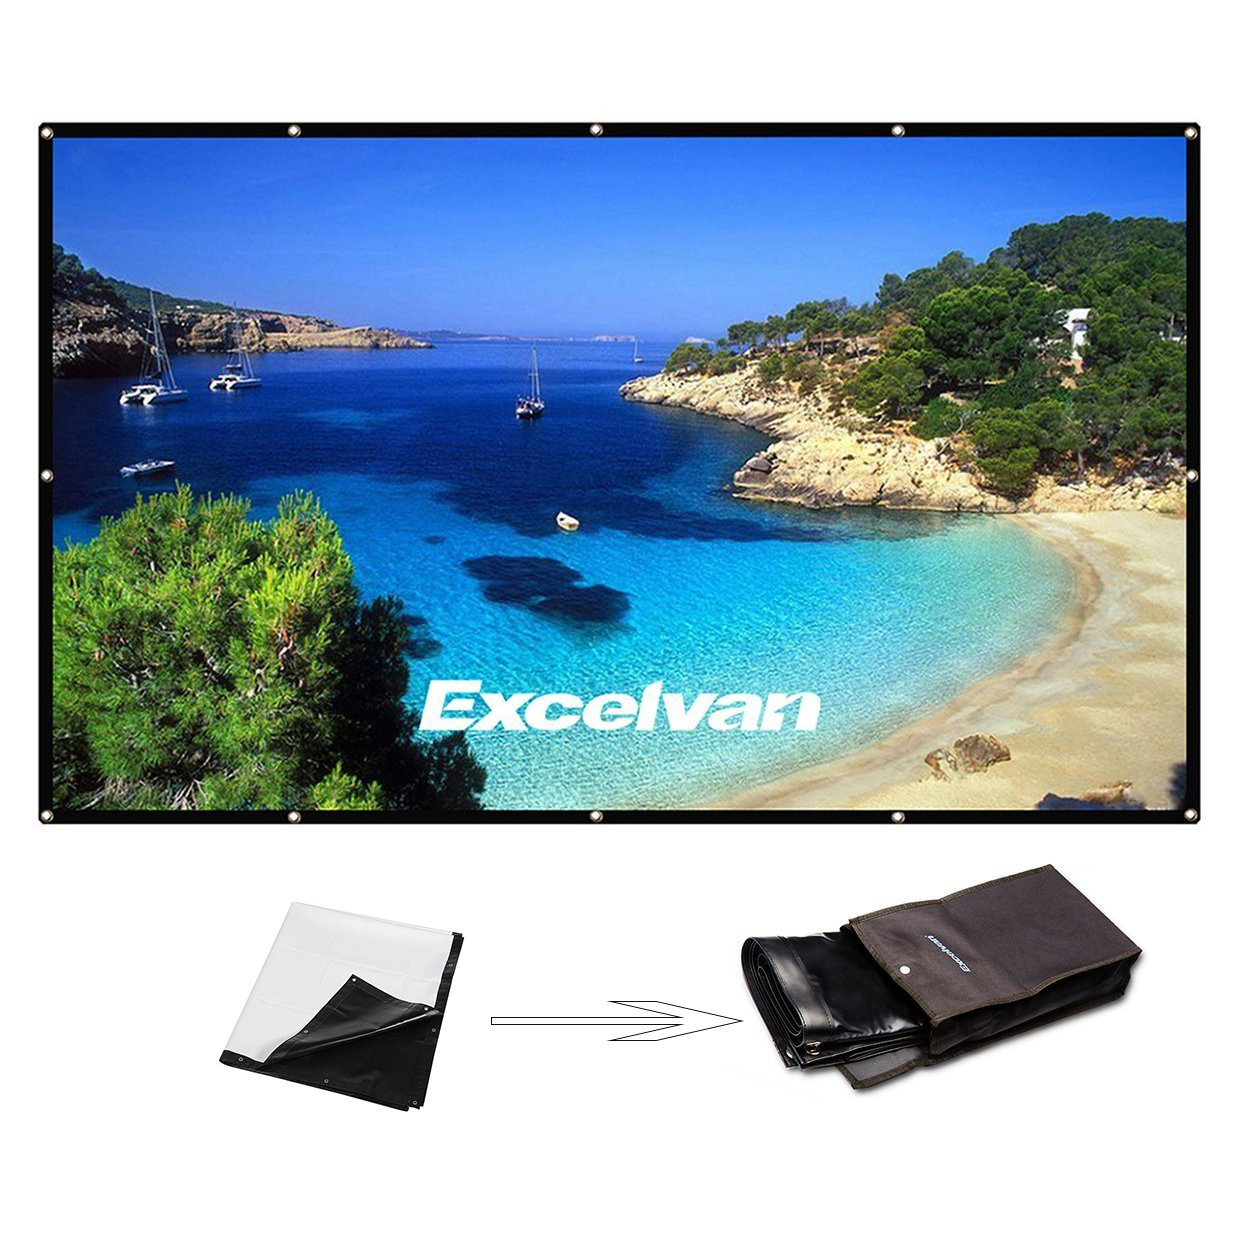 Excelvan 150 Inch 16:9 Projector Screen High Contrast Collapsible PVC Front Projection Design with Hanging Hole Grommets for Portable Home Indoor Outdoor Movie Match Party 170526-M6